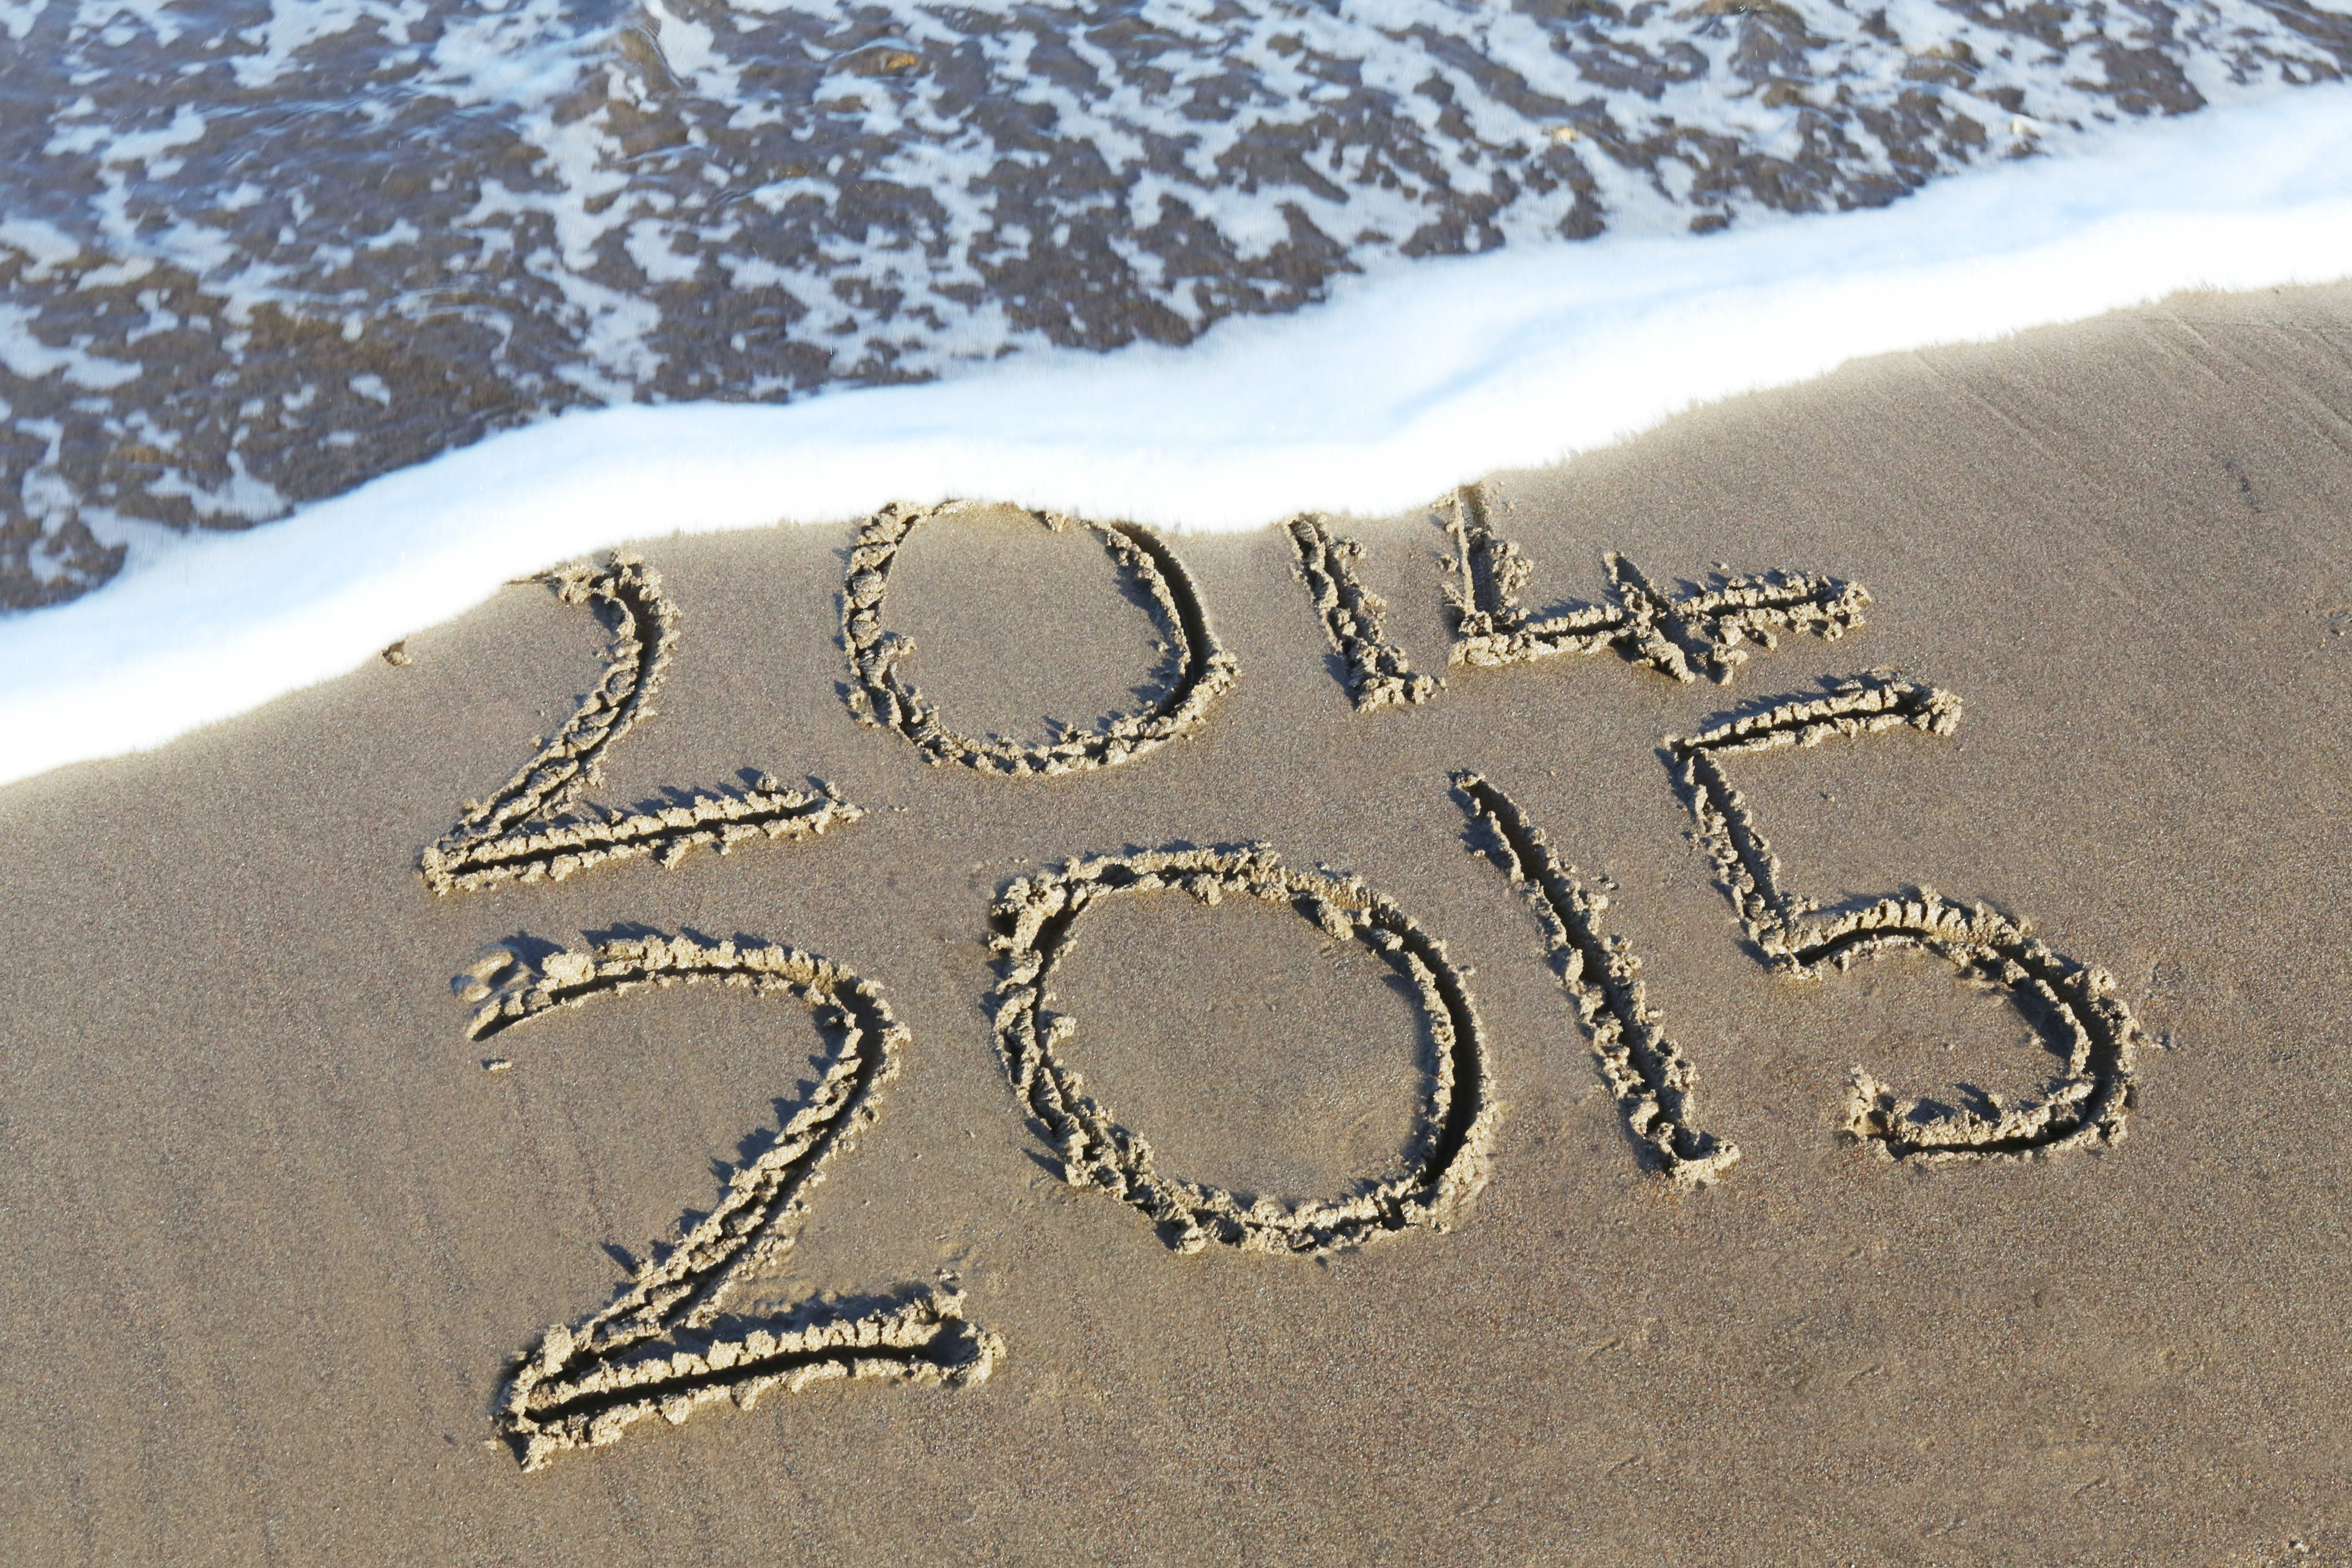 Tide covering inscription of the old year above the new year n the sand